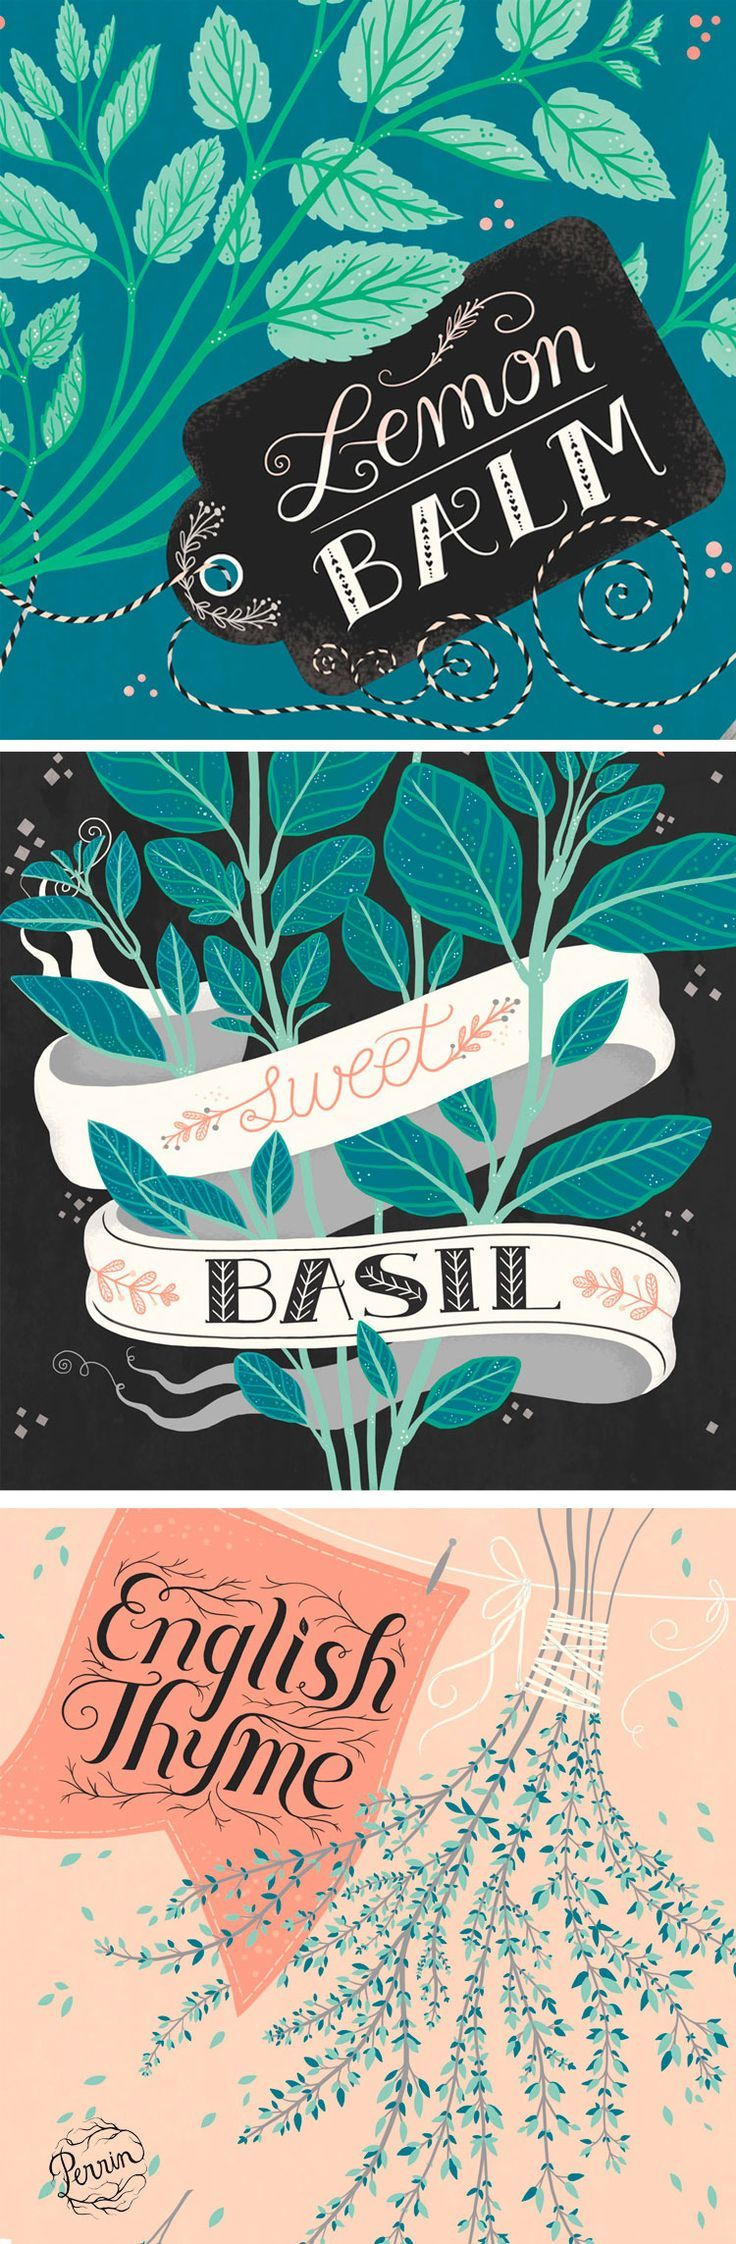 """Three illustrated seed packets for Sweet Basil, Lemon Balm, and English Thyme. The packs are available on the Anthropologie website. <a href=""""http:∕∕www.anthropologie.com∕anthro∕pdp∕detail.jsp?&pageName=Herb+Seed+Variety&catId=HOME-GARDEN&id=35282706#"""" rel=""""nofollow"""" target=""""_blank"""">www.anthropologie...<∕a> ©Perrin 2015 <a href=""""http:∕∕www.madebyperrin.com"""" rel=""""nofollow"""" target=""""_blank"""">www.madebyperrin.com<∕a> Uploaded by user:"""